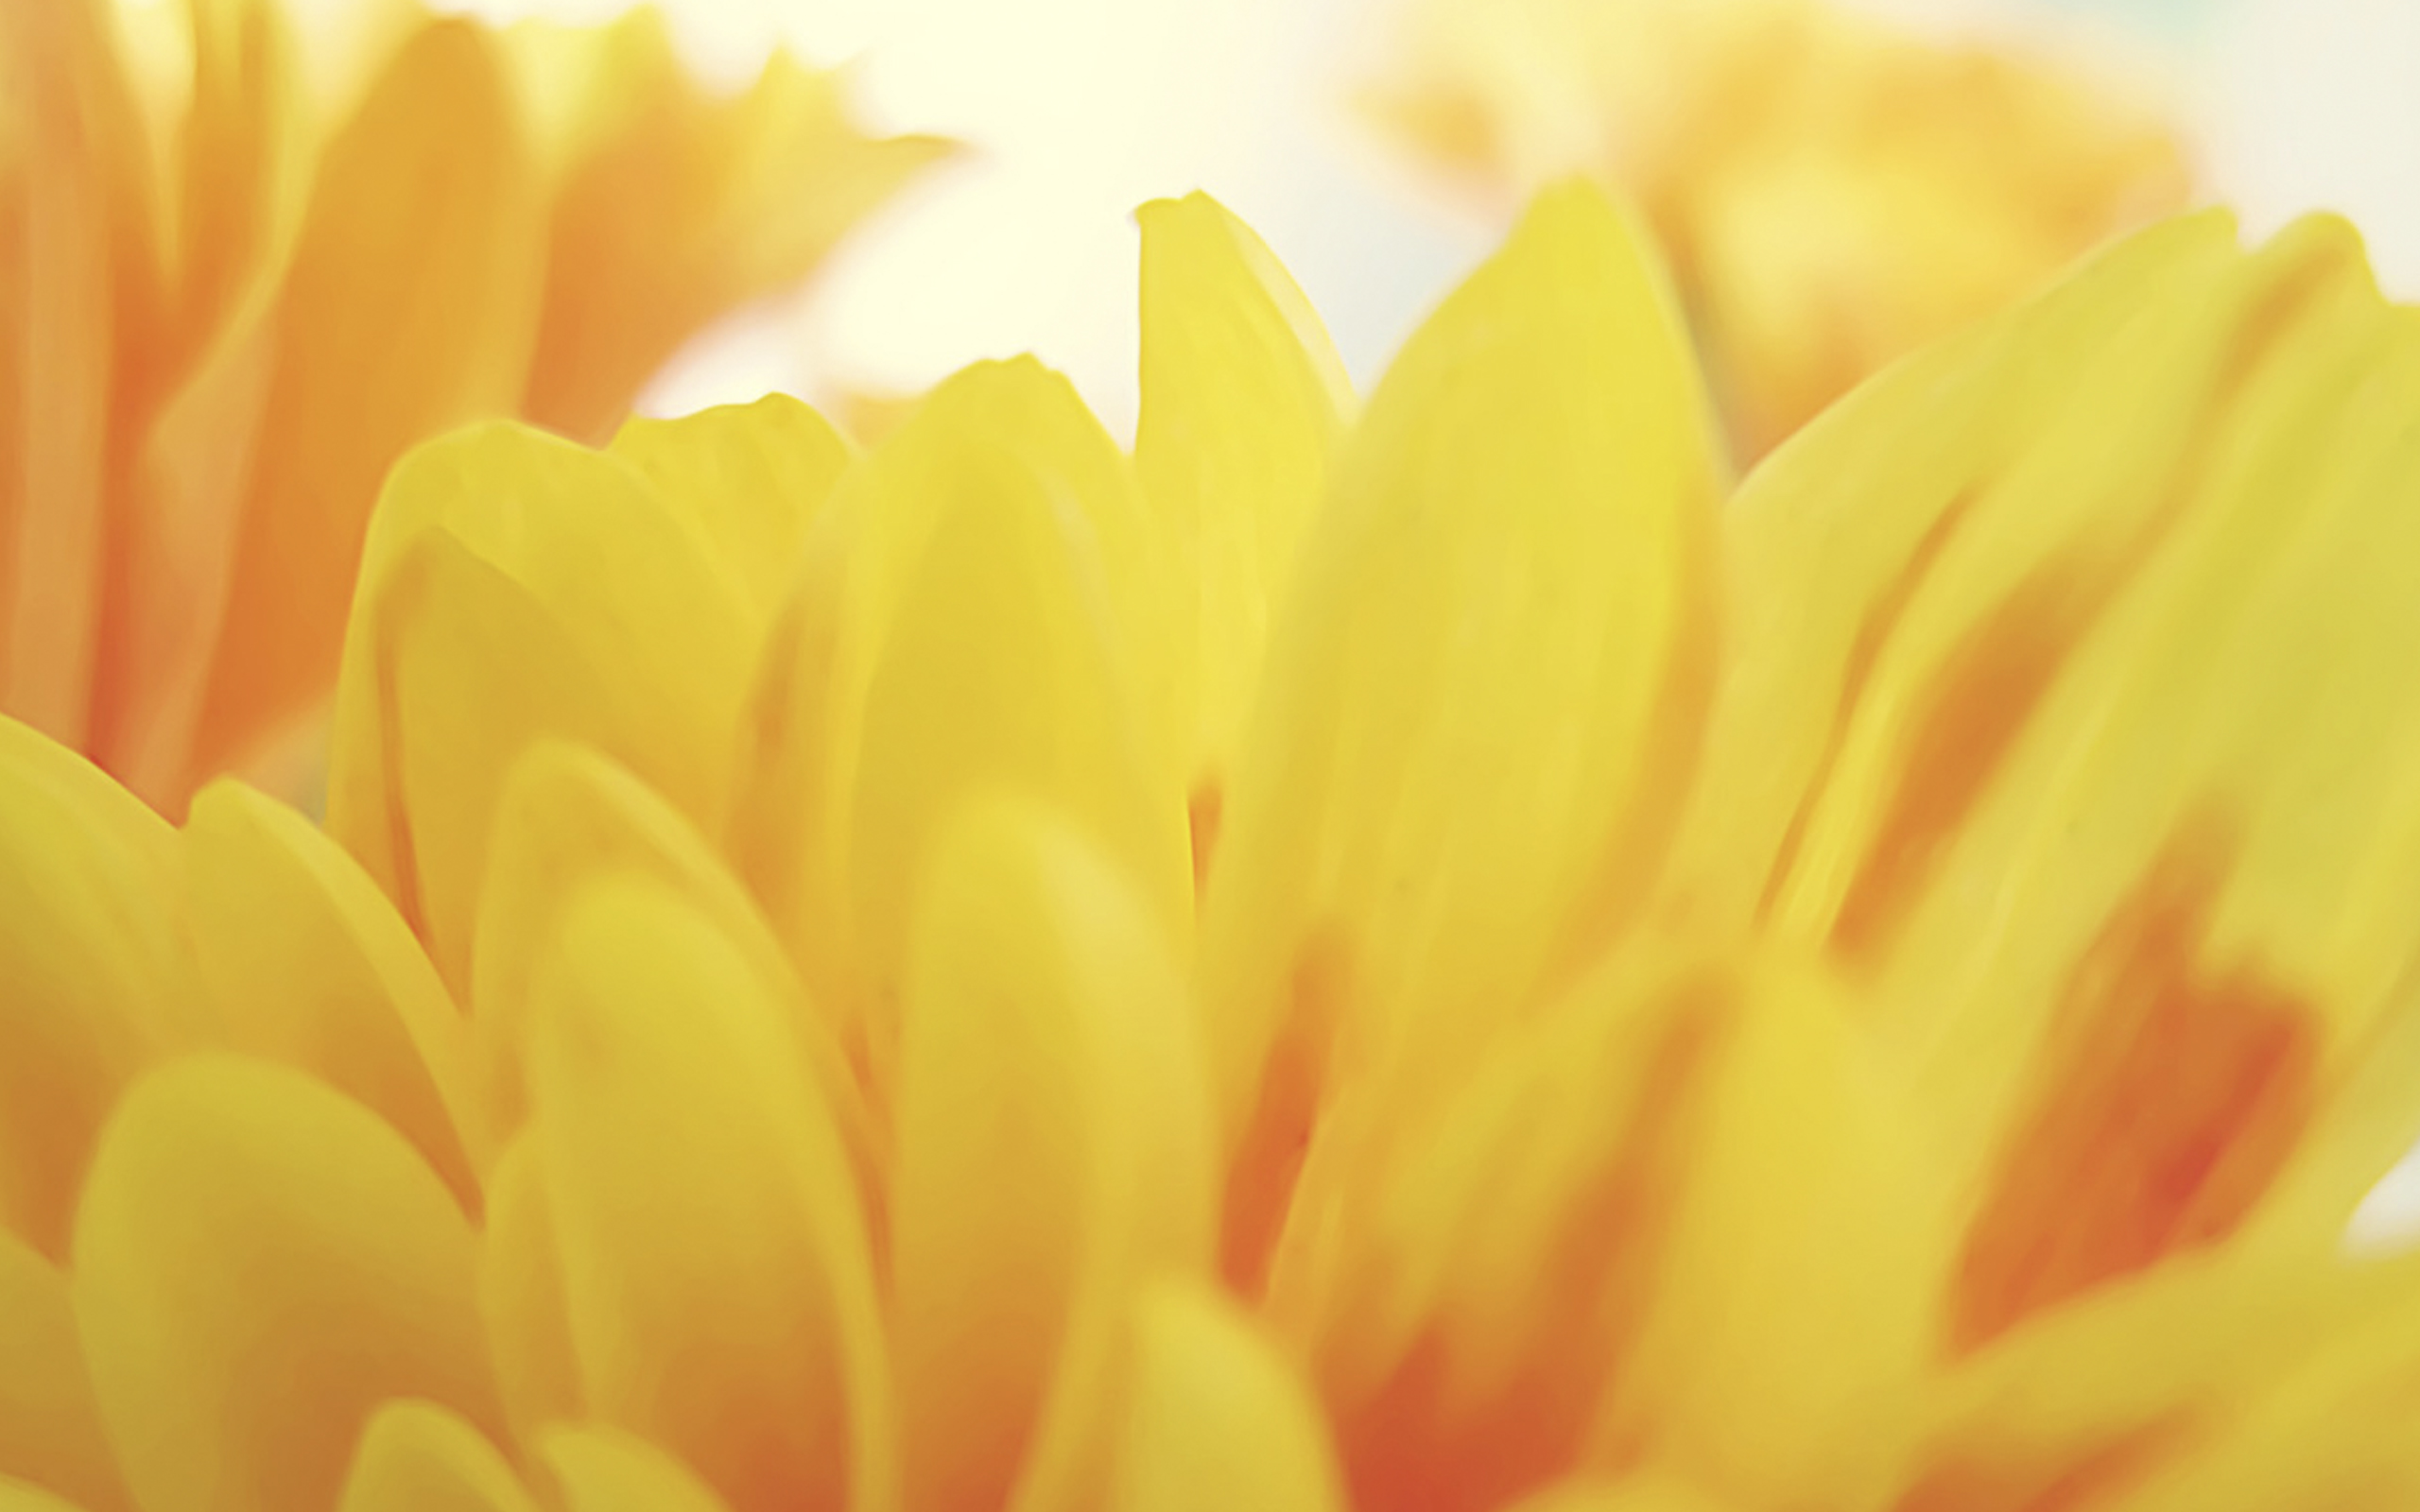 Lina by AidenDrew, daisy petals, yellow petals, flower, yellow flower